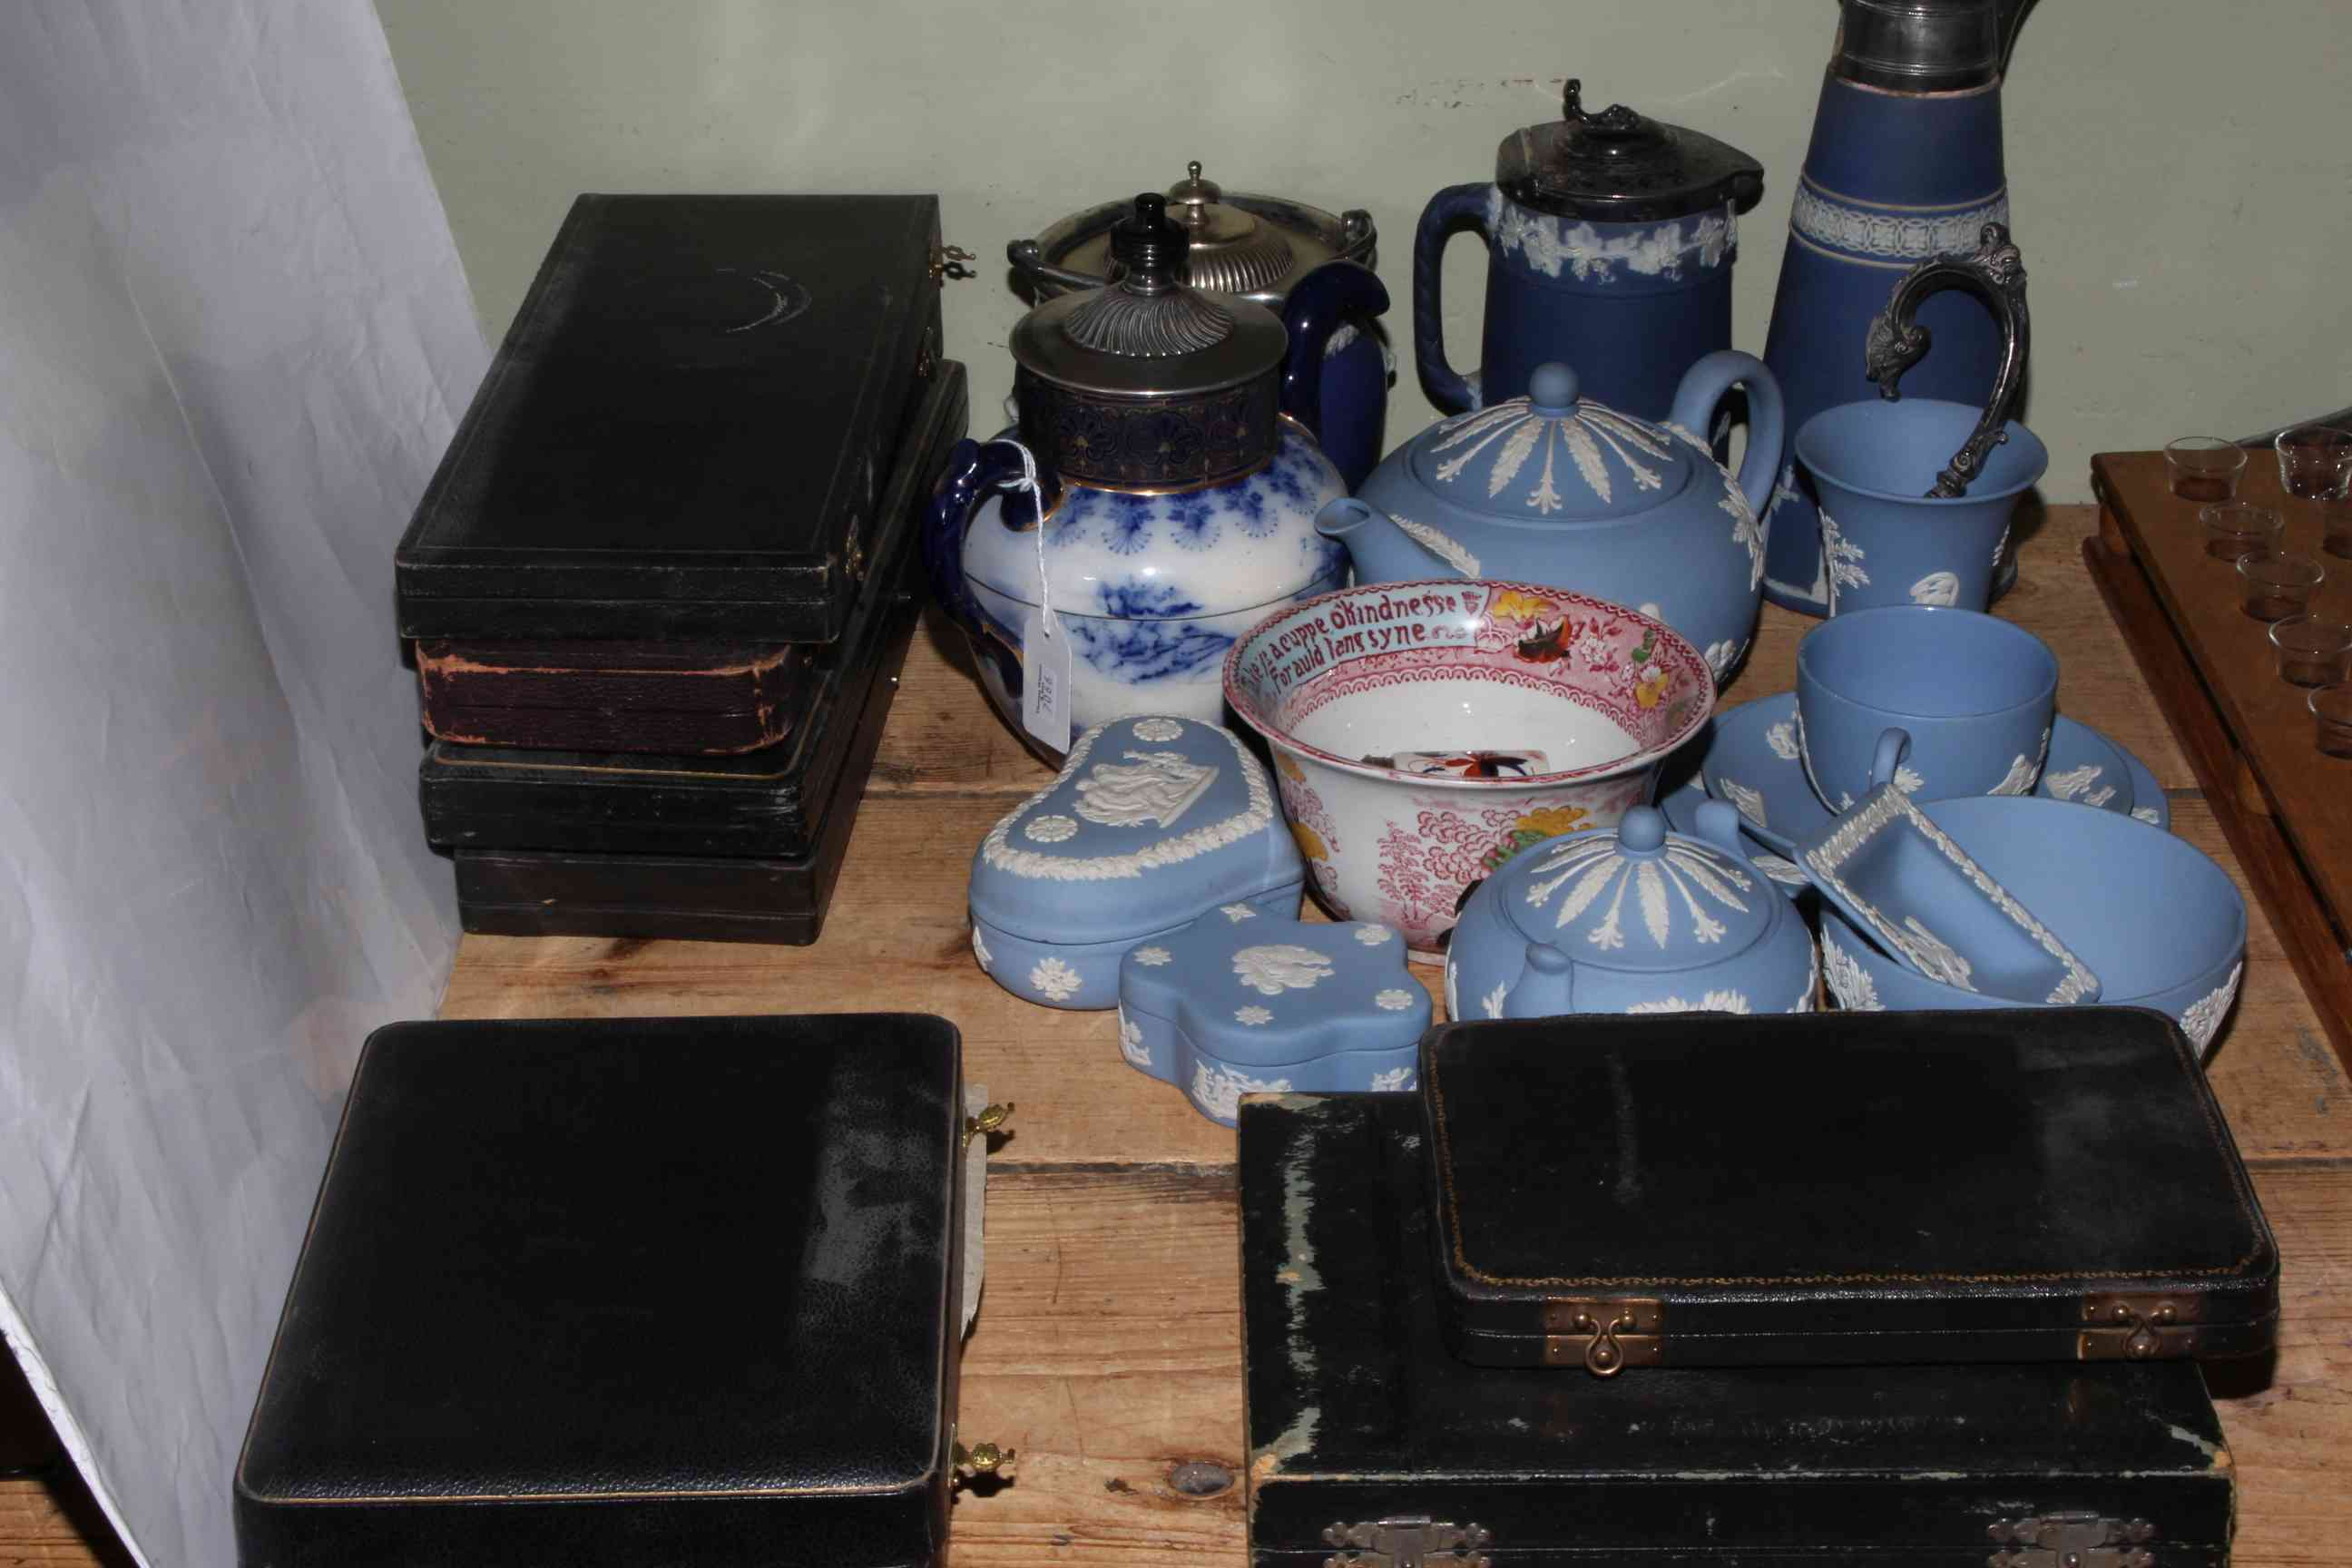 Lot 57 - Assortment of Wedgwood, Royal Doulton self-pouring teapot, cased EPNS cutlery sets etc.